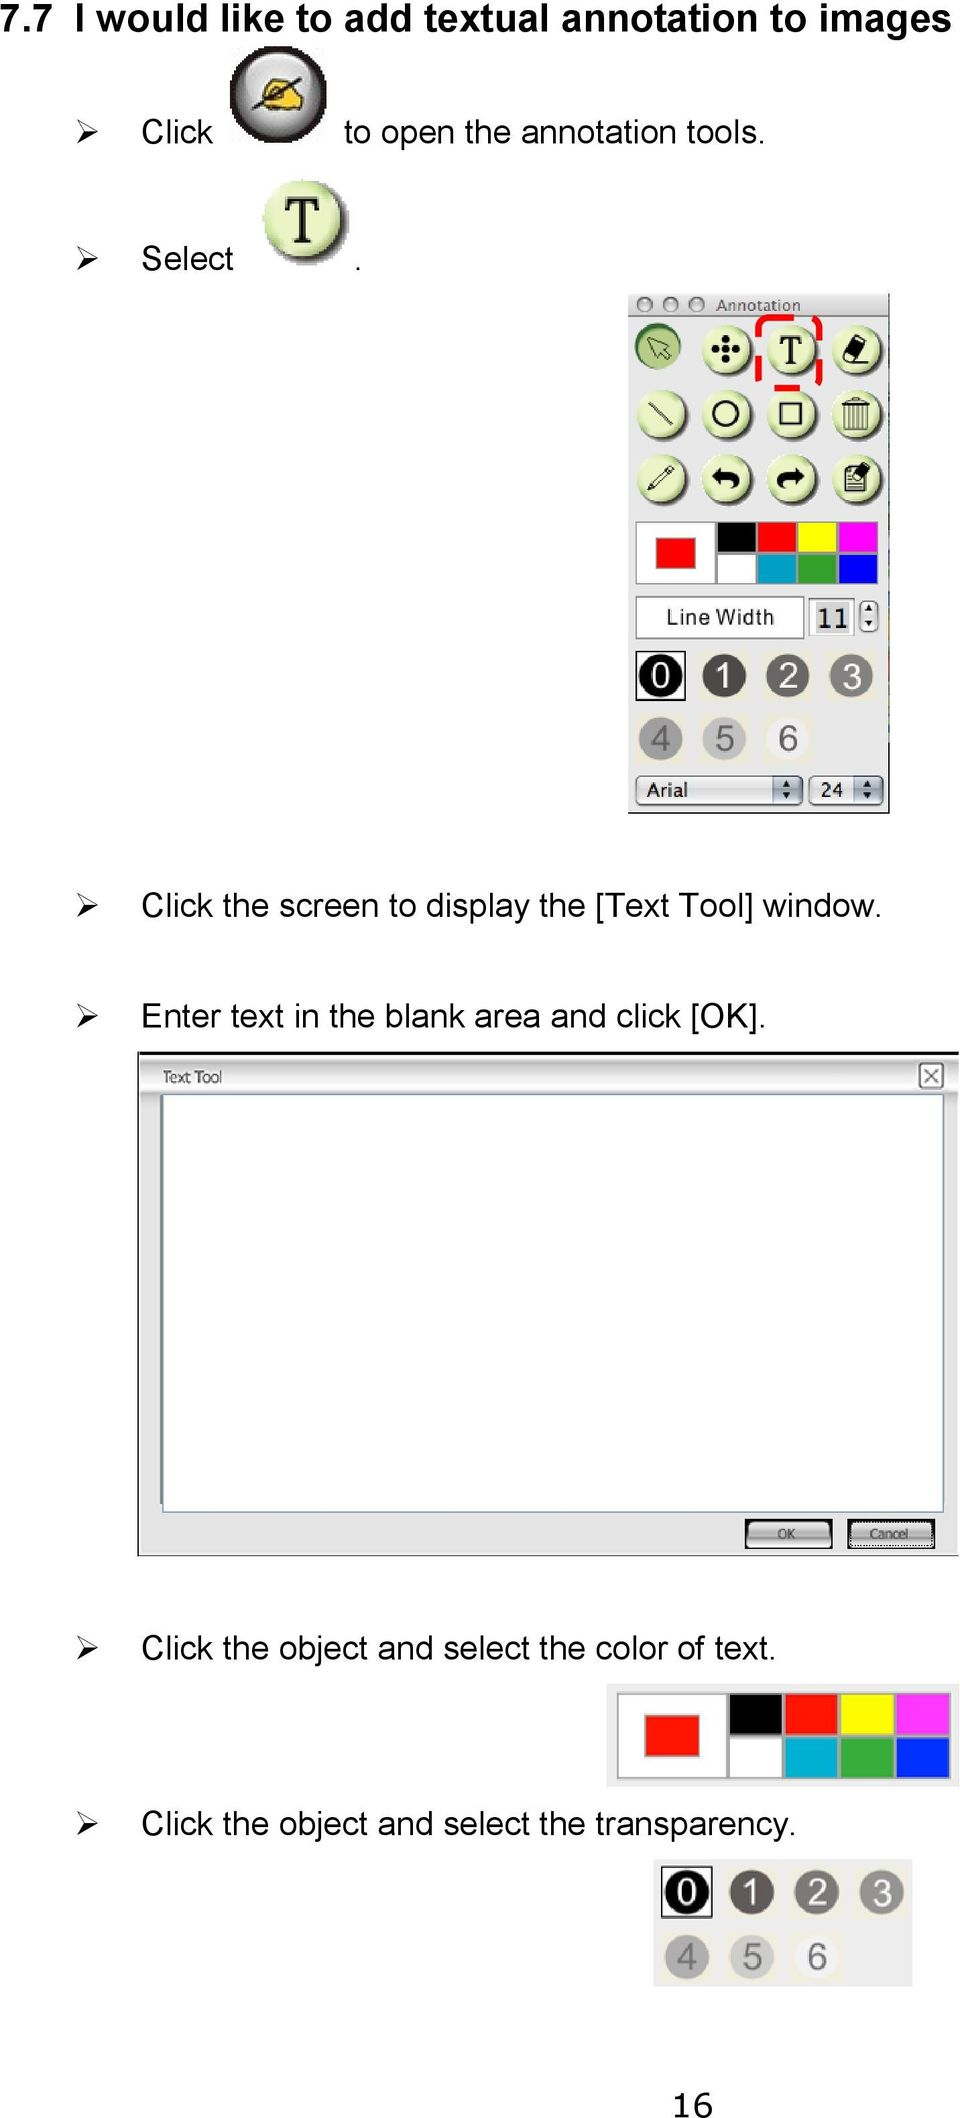 Click the screen to display the [Text Tool] window.